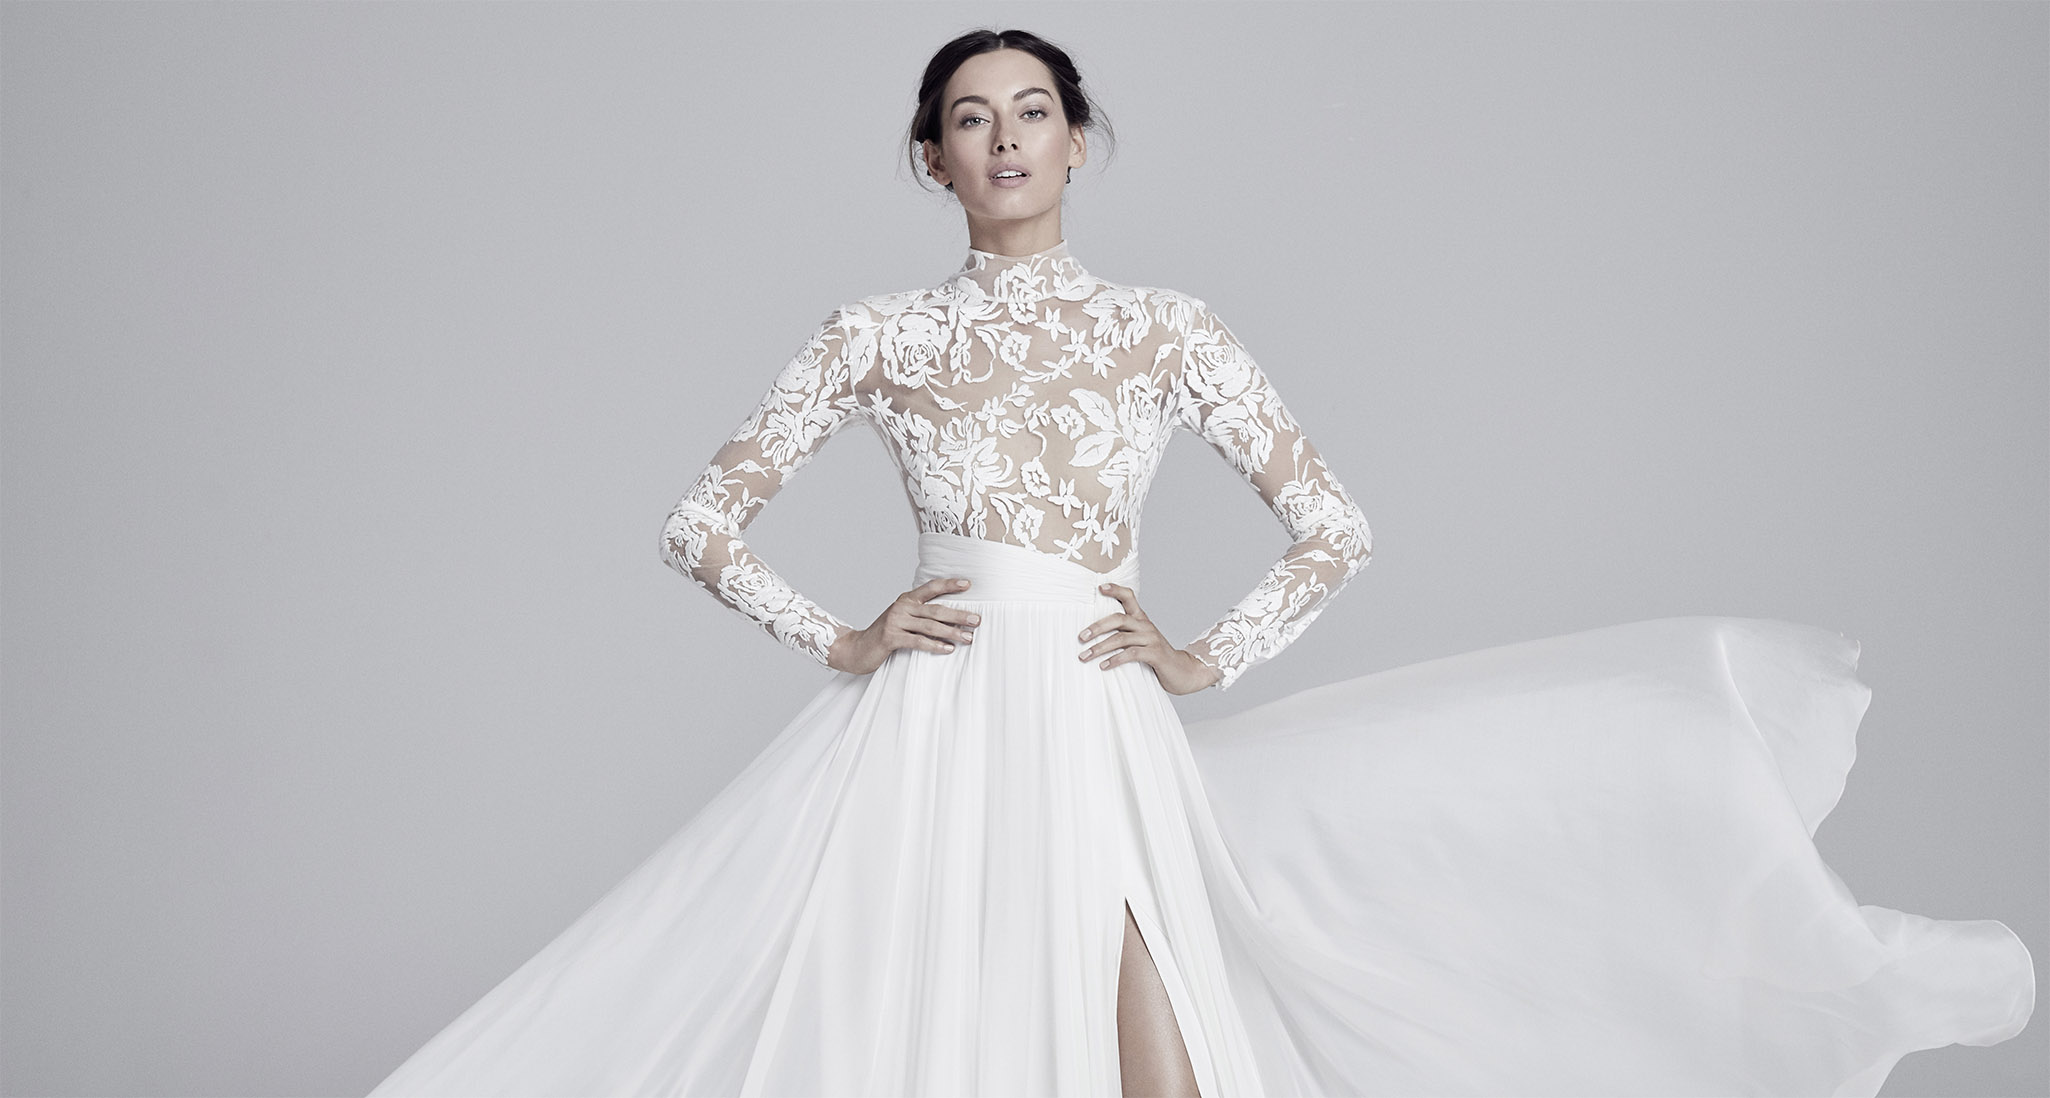 a472af6dfa New York Bridal Fashion Week  Best Wedding Dress Trends 2019-2020